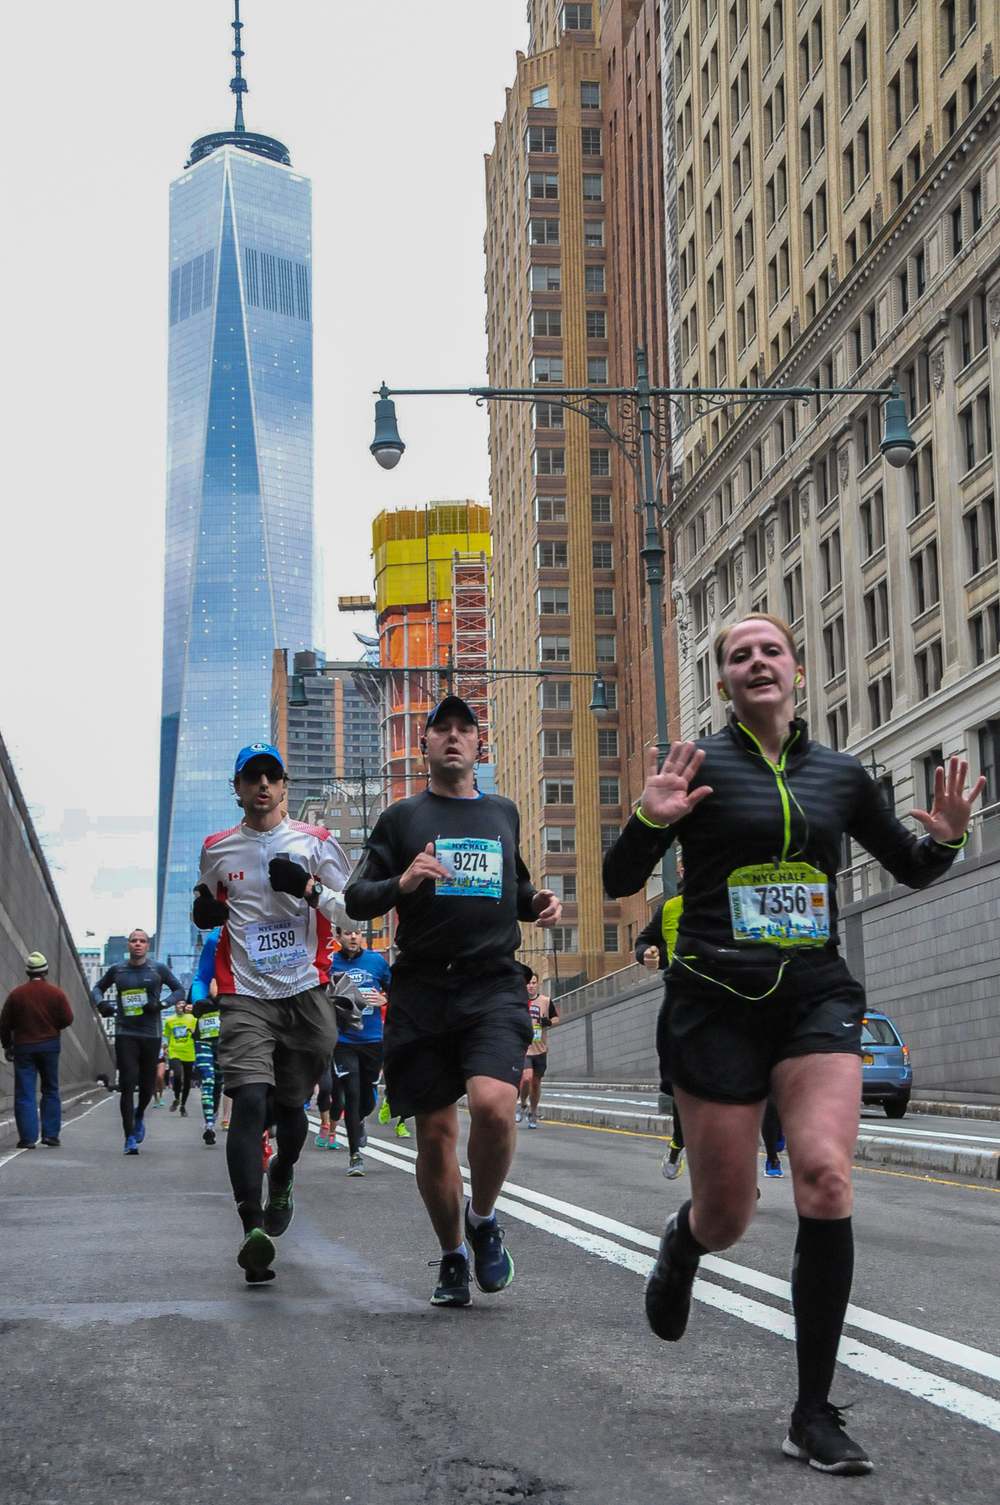 Almost done - running in the shadow of the new World Trade Center